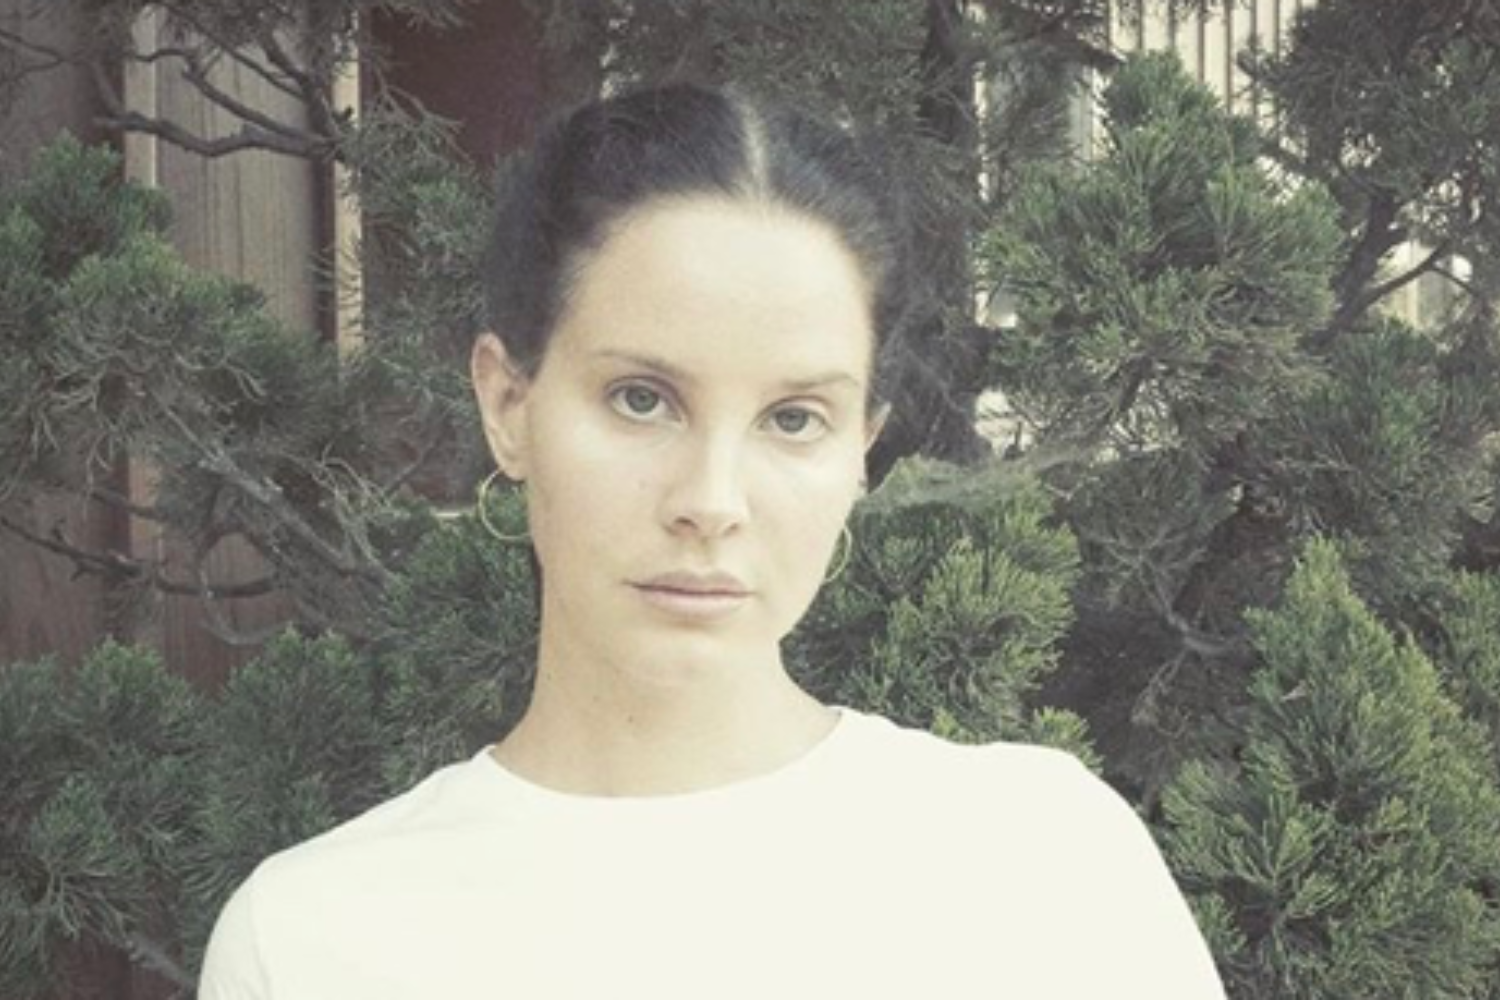 Lana Del Rey goes on a regrettable Instagram tirade, also announces new album